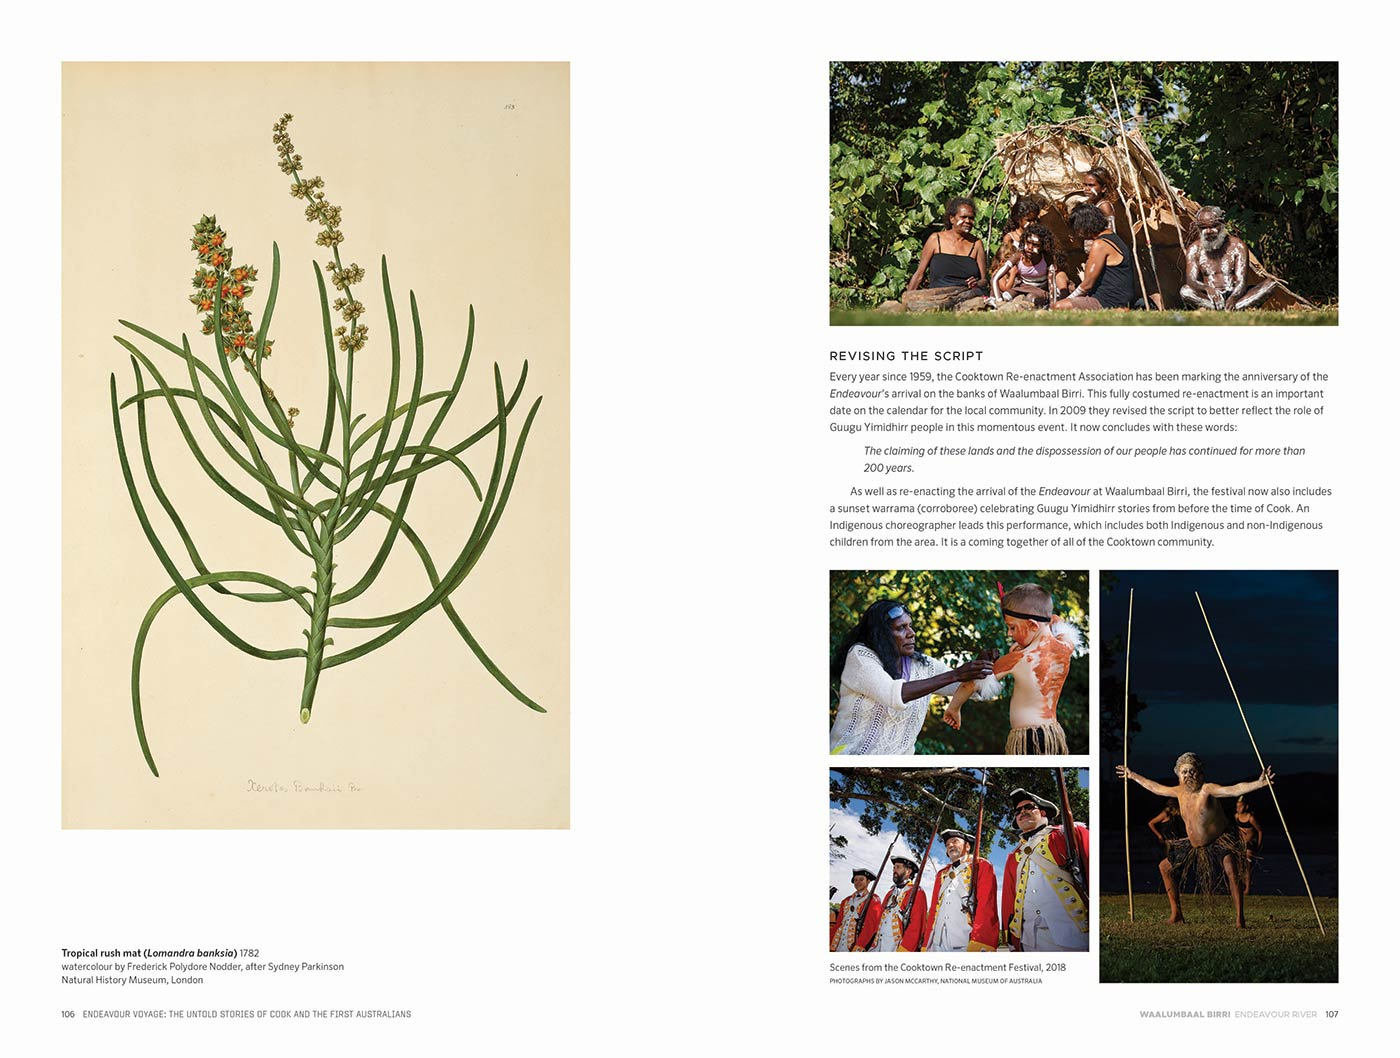 Sample page for the Endeavour Voyages: The Untold Stories of Cook and the First Australians catalogue. The page features body text, and images including an artwork of a plant species, and various scenes of people participating in the 2018 Cooktown Re-enactment Festival. - click to view larger image